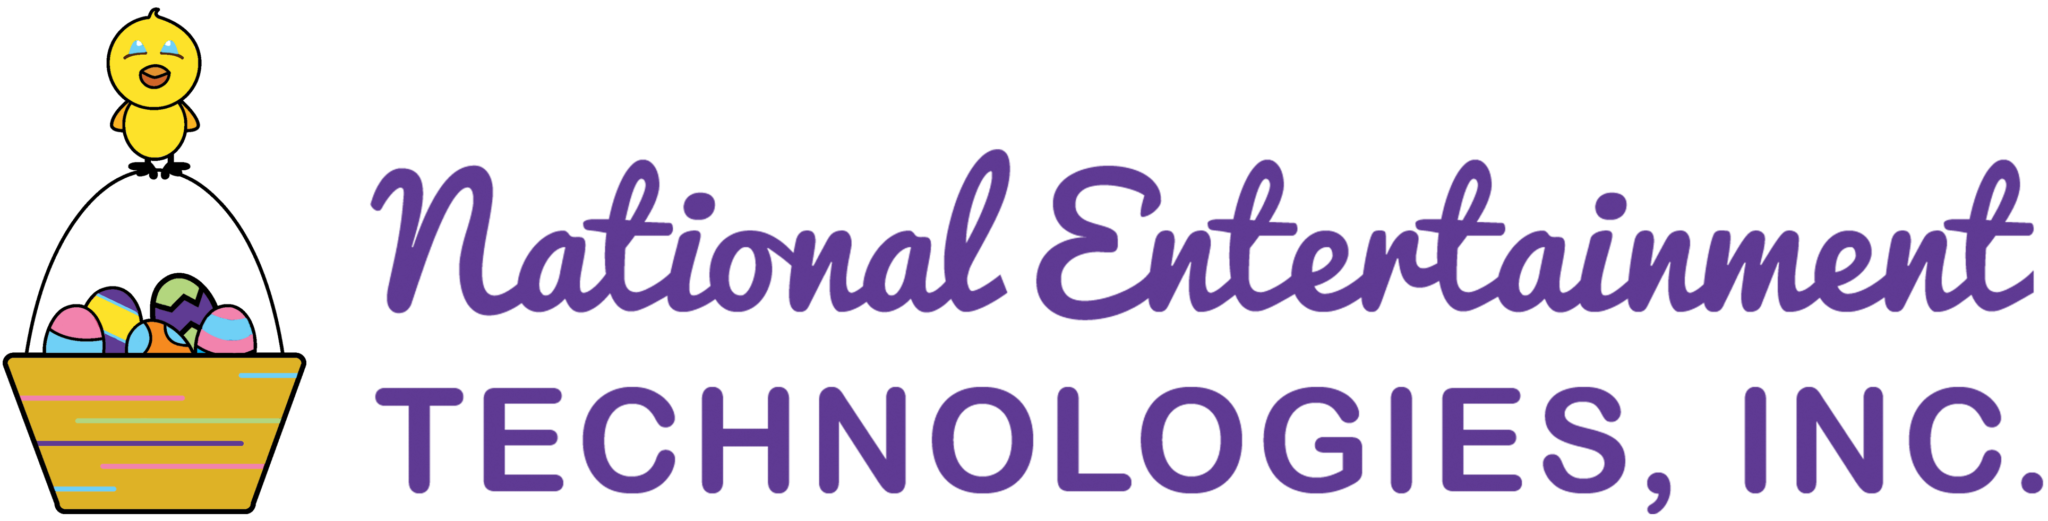 National Entertainment Technologies, Inc.